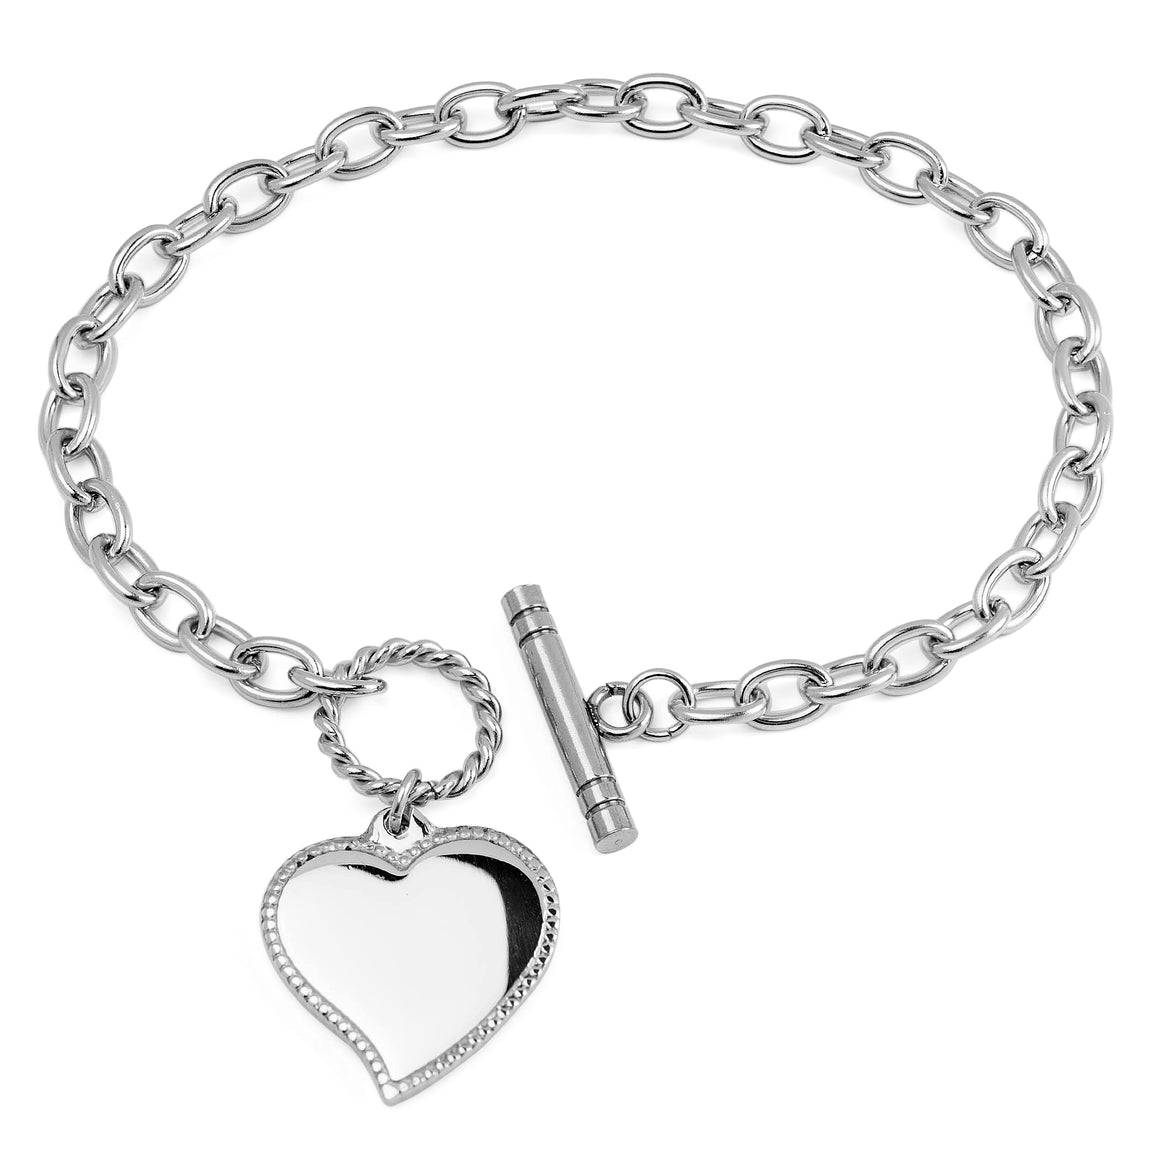 ELYA Women's Polished Heart Charm Cable Chain Link Stainless Steel Bracelet